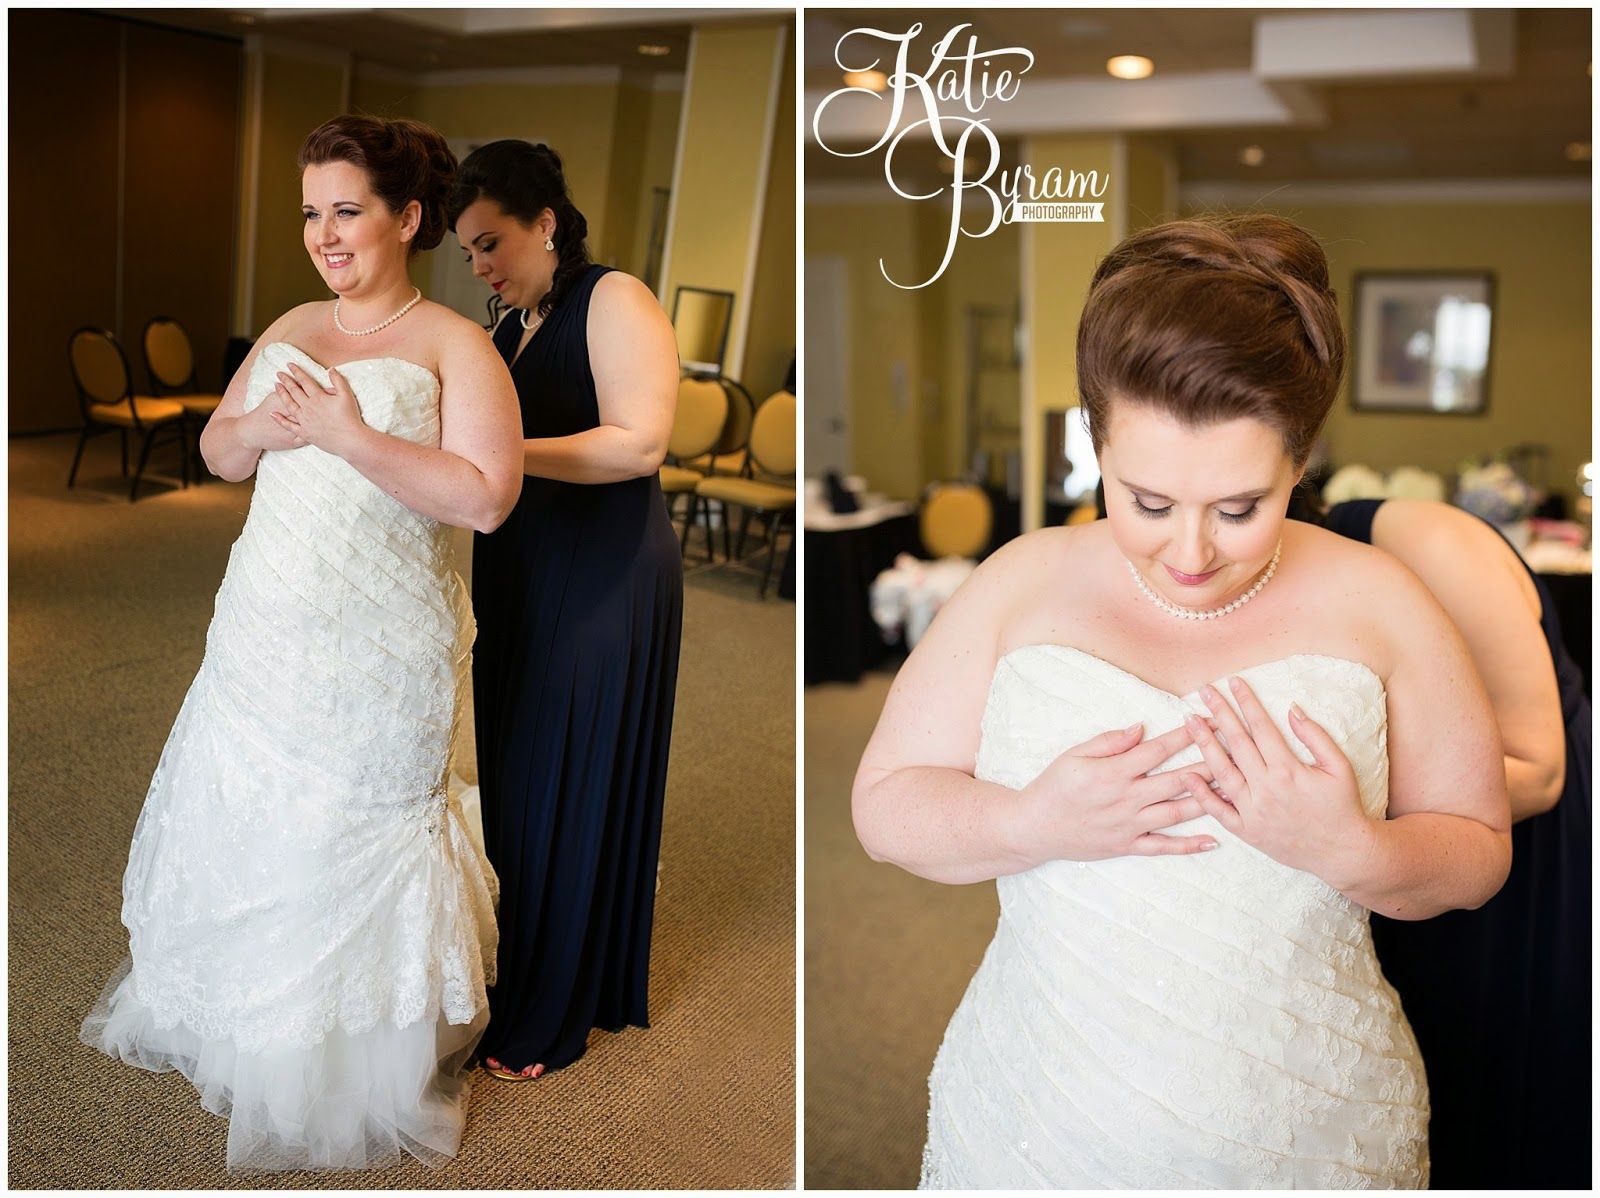 bride getting ready, destination wedding, clearwater beach wedding, hilton clearwater beach wedding, katie byram photography, florida wedding